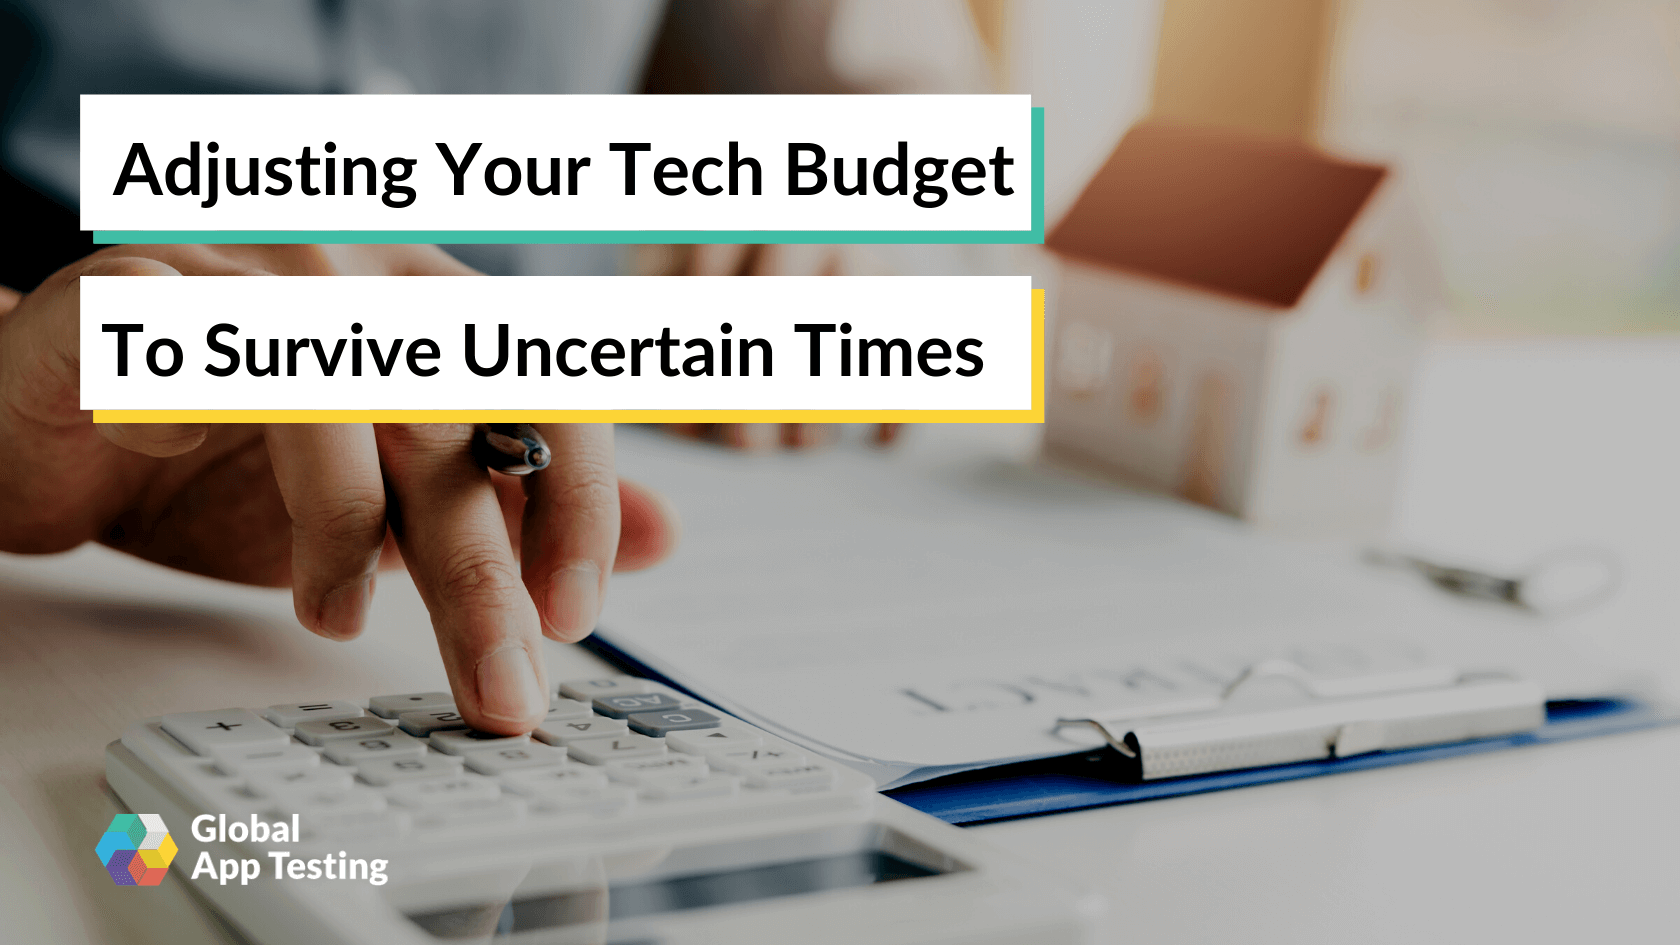 Adjusting Your Tech Budget to Survive Uncertain Times